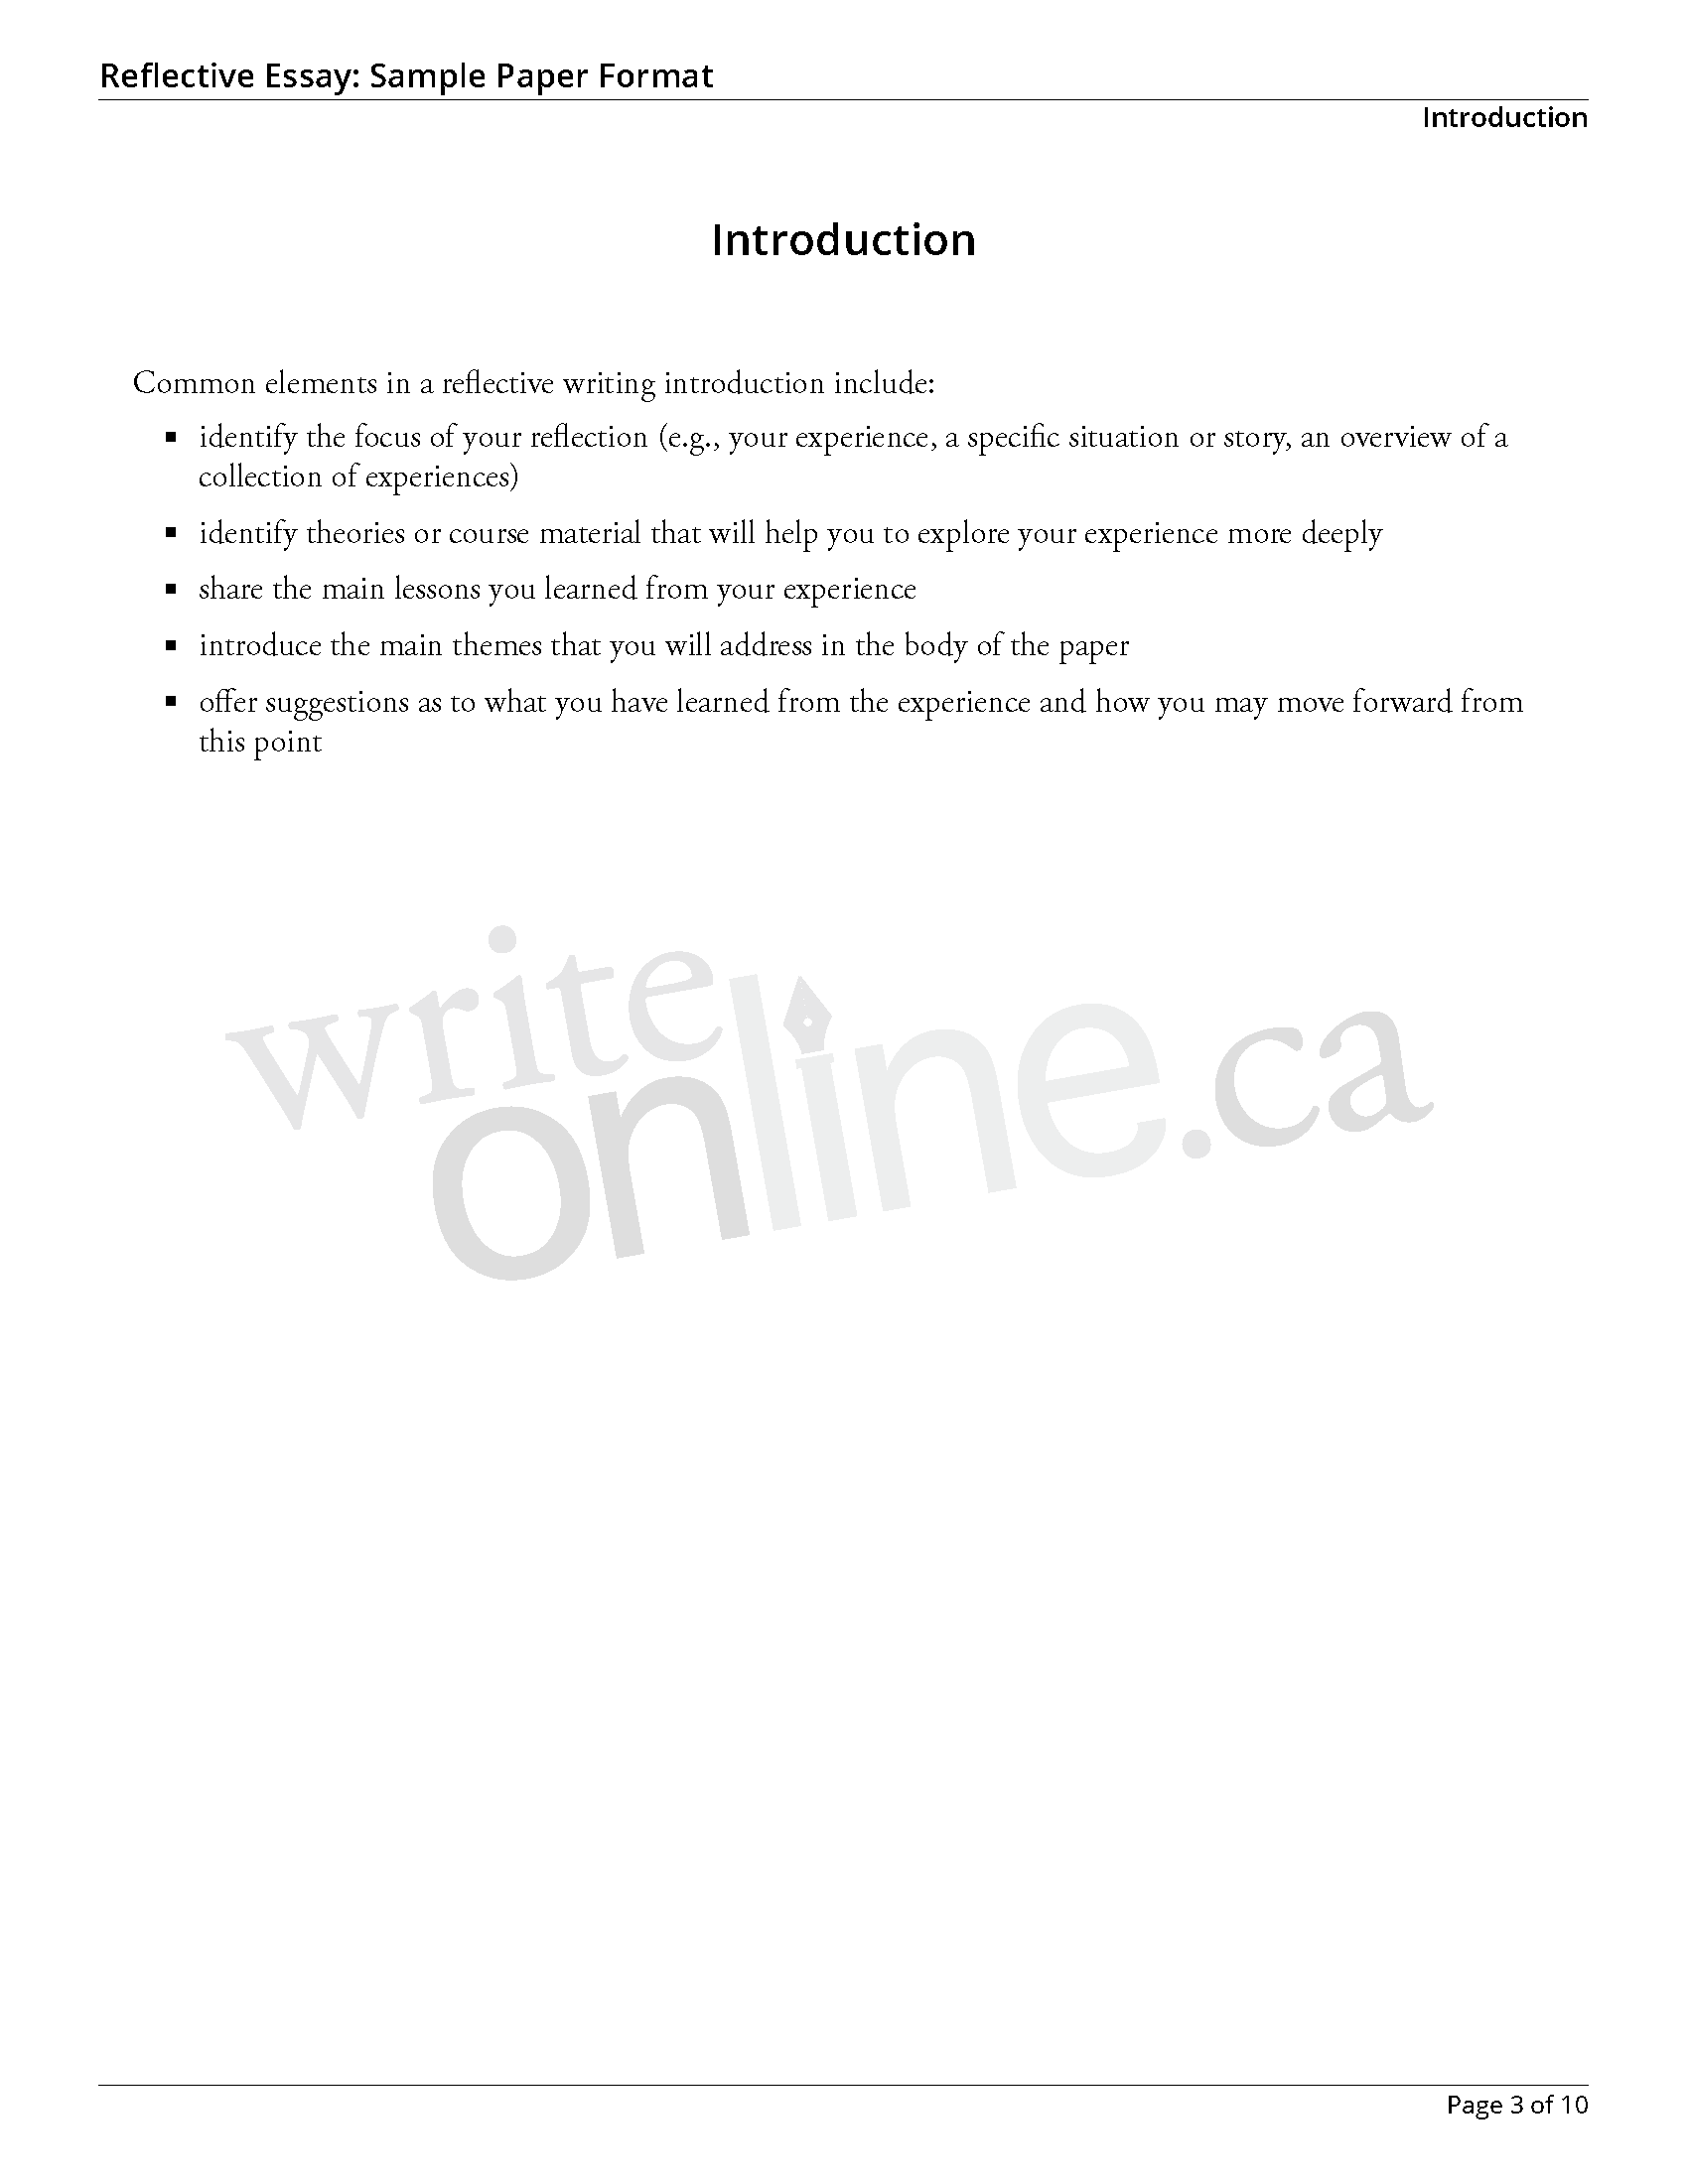 009 Reflectiveessay Sample Page 3 Essay Example Personal Stirring Reflection National 5 Reflective Examples On Anxiety Full